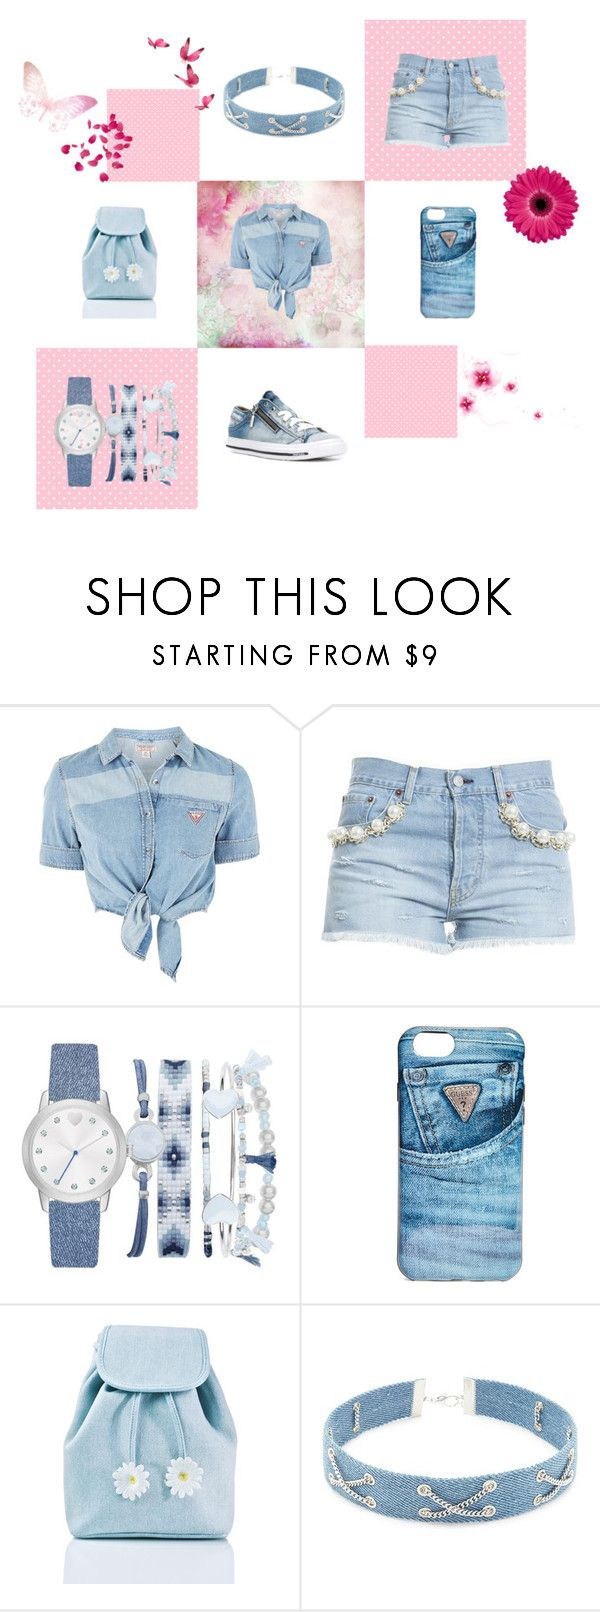 """Just Denim"" by iris913 ❤ liked on Polyvore featuring GUESS, Forte Couture, A.X.N.Y., Sugarbaby, Forever 21, Diesel, denim, distresseddenim and justdenim"